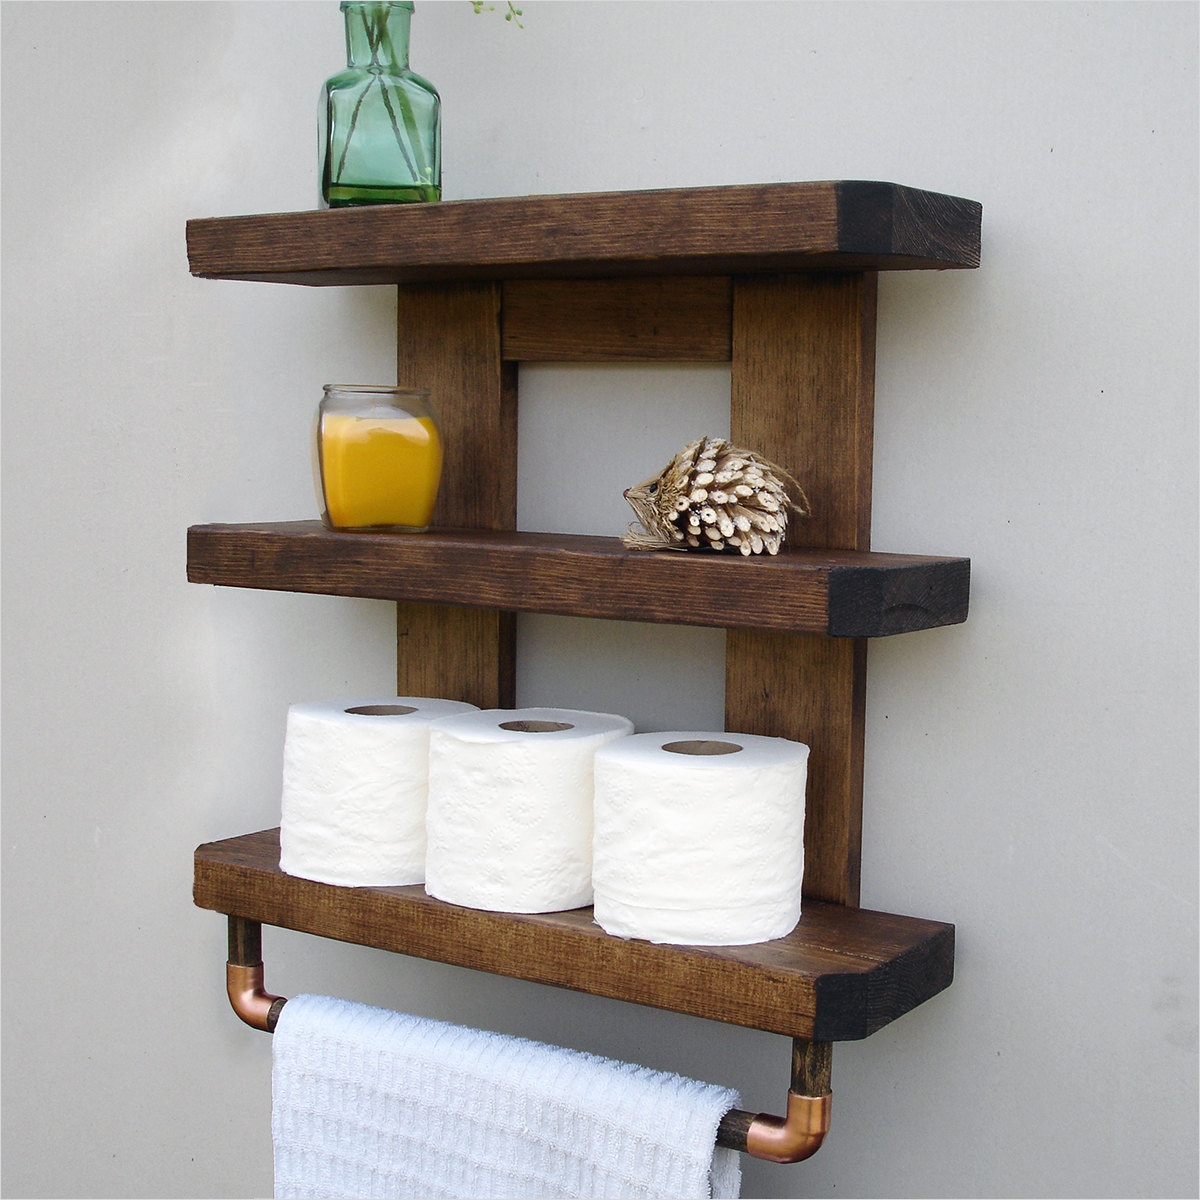 44 Creative Ideas Rustic Bathroom Walls Shelf 82 Rustic Bathroom Shelves 6